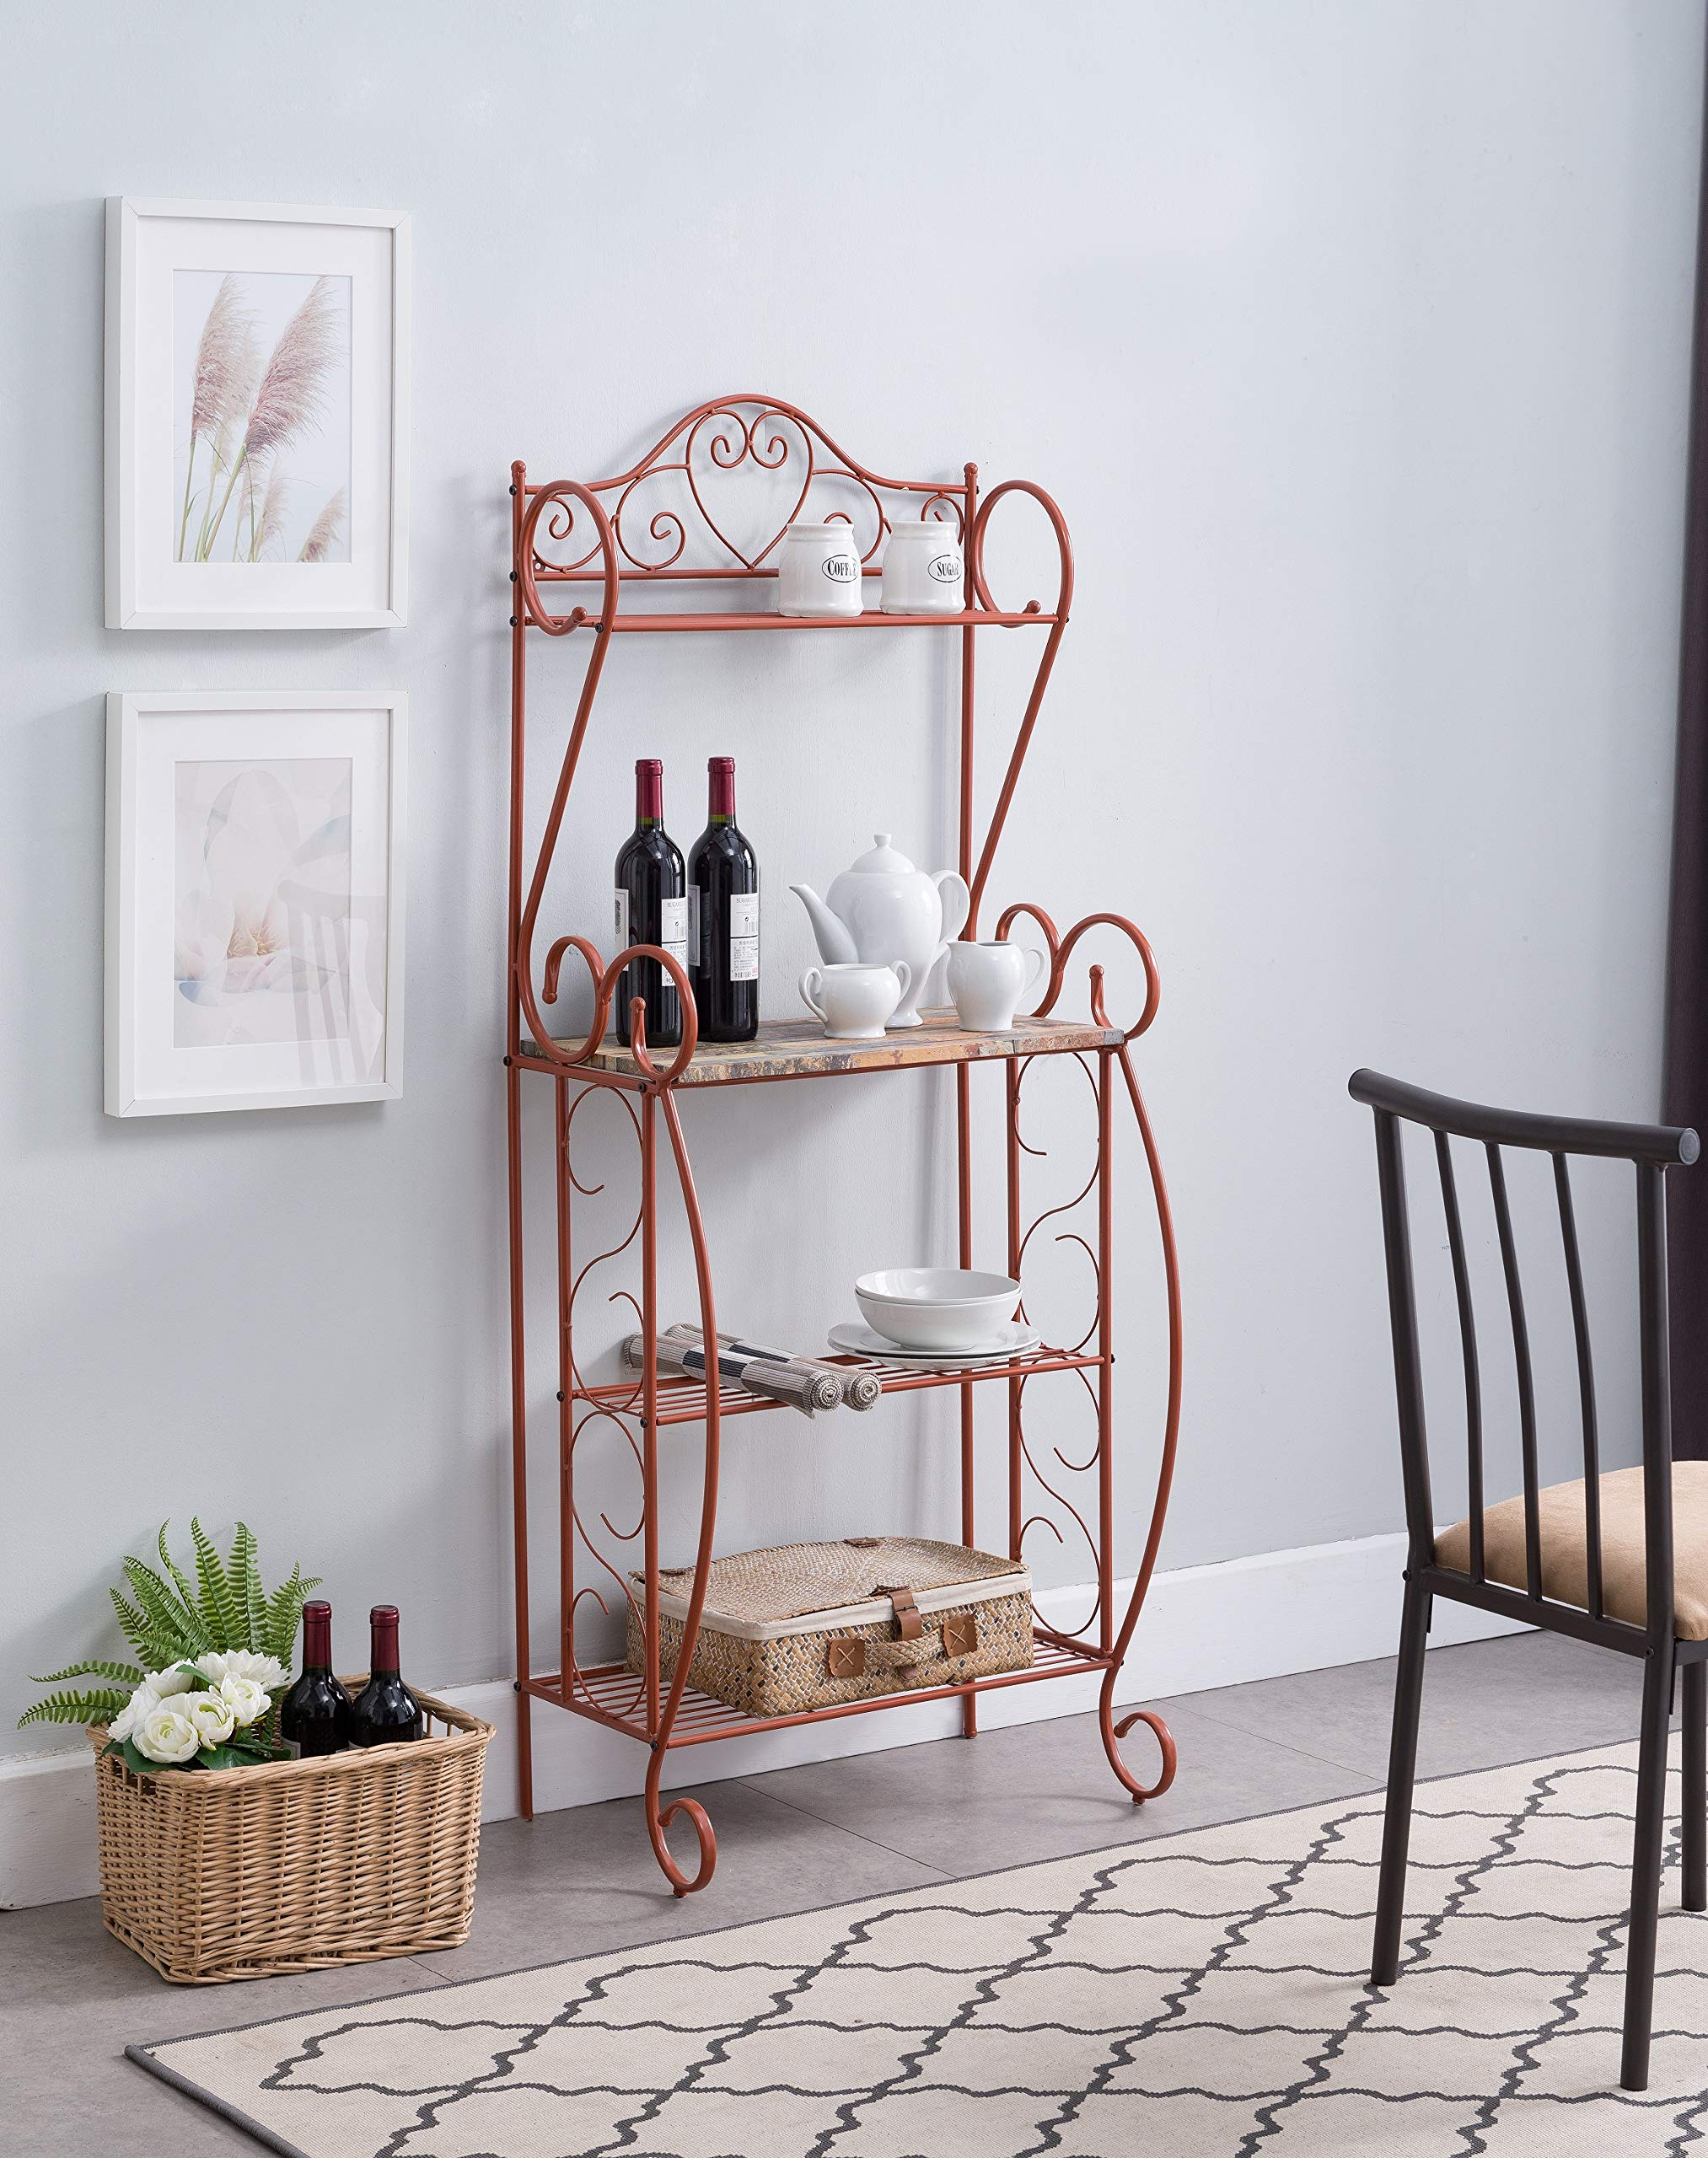 Kings Brand Furniture - Sparta Metal Kitchen Storage Bakers Rack, Orange by Kings Brand Furniture